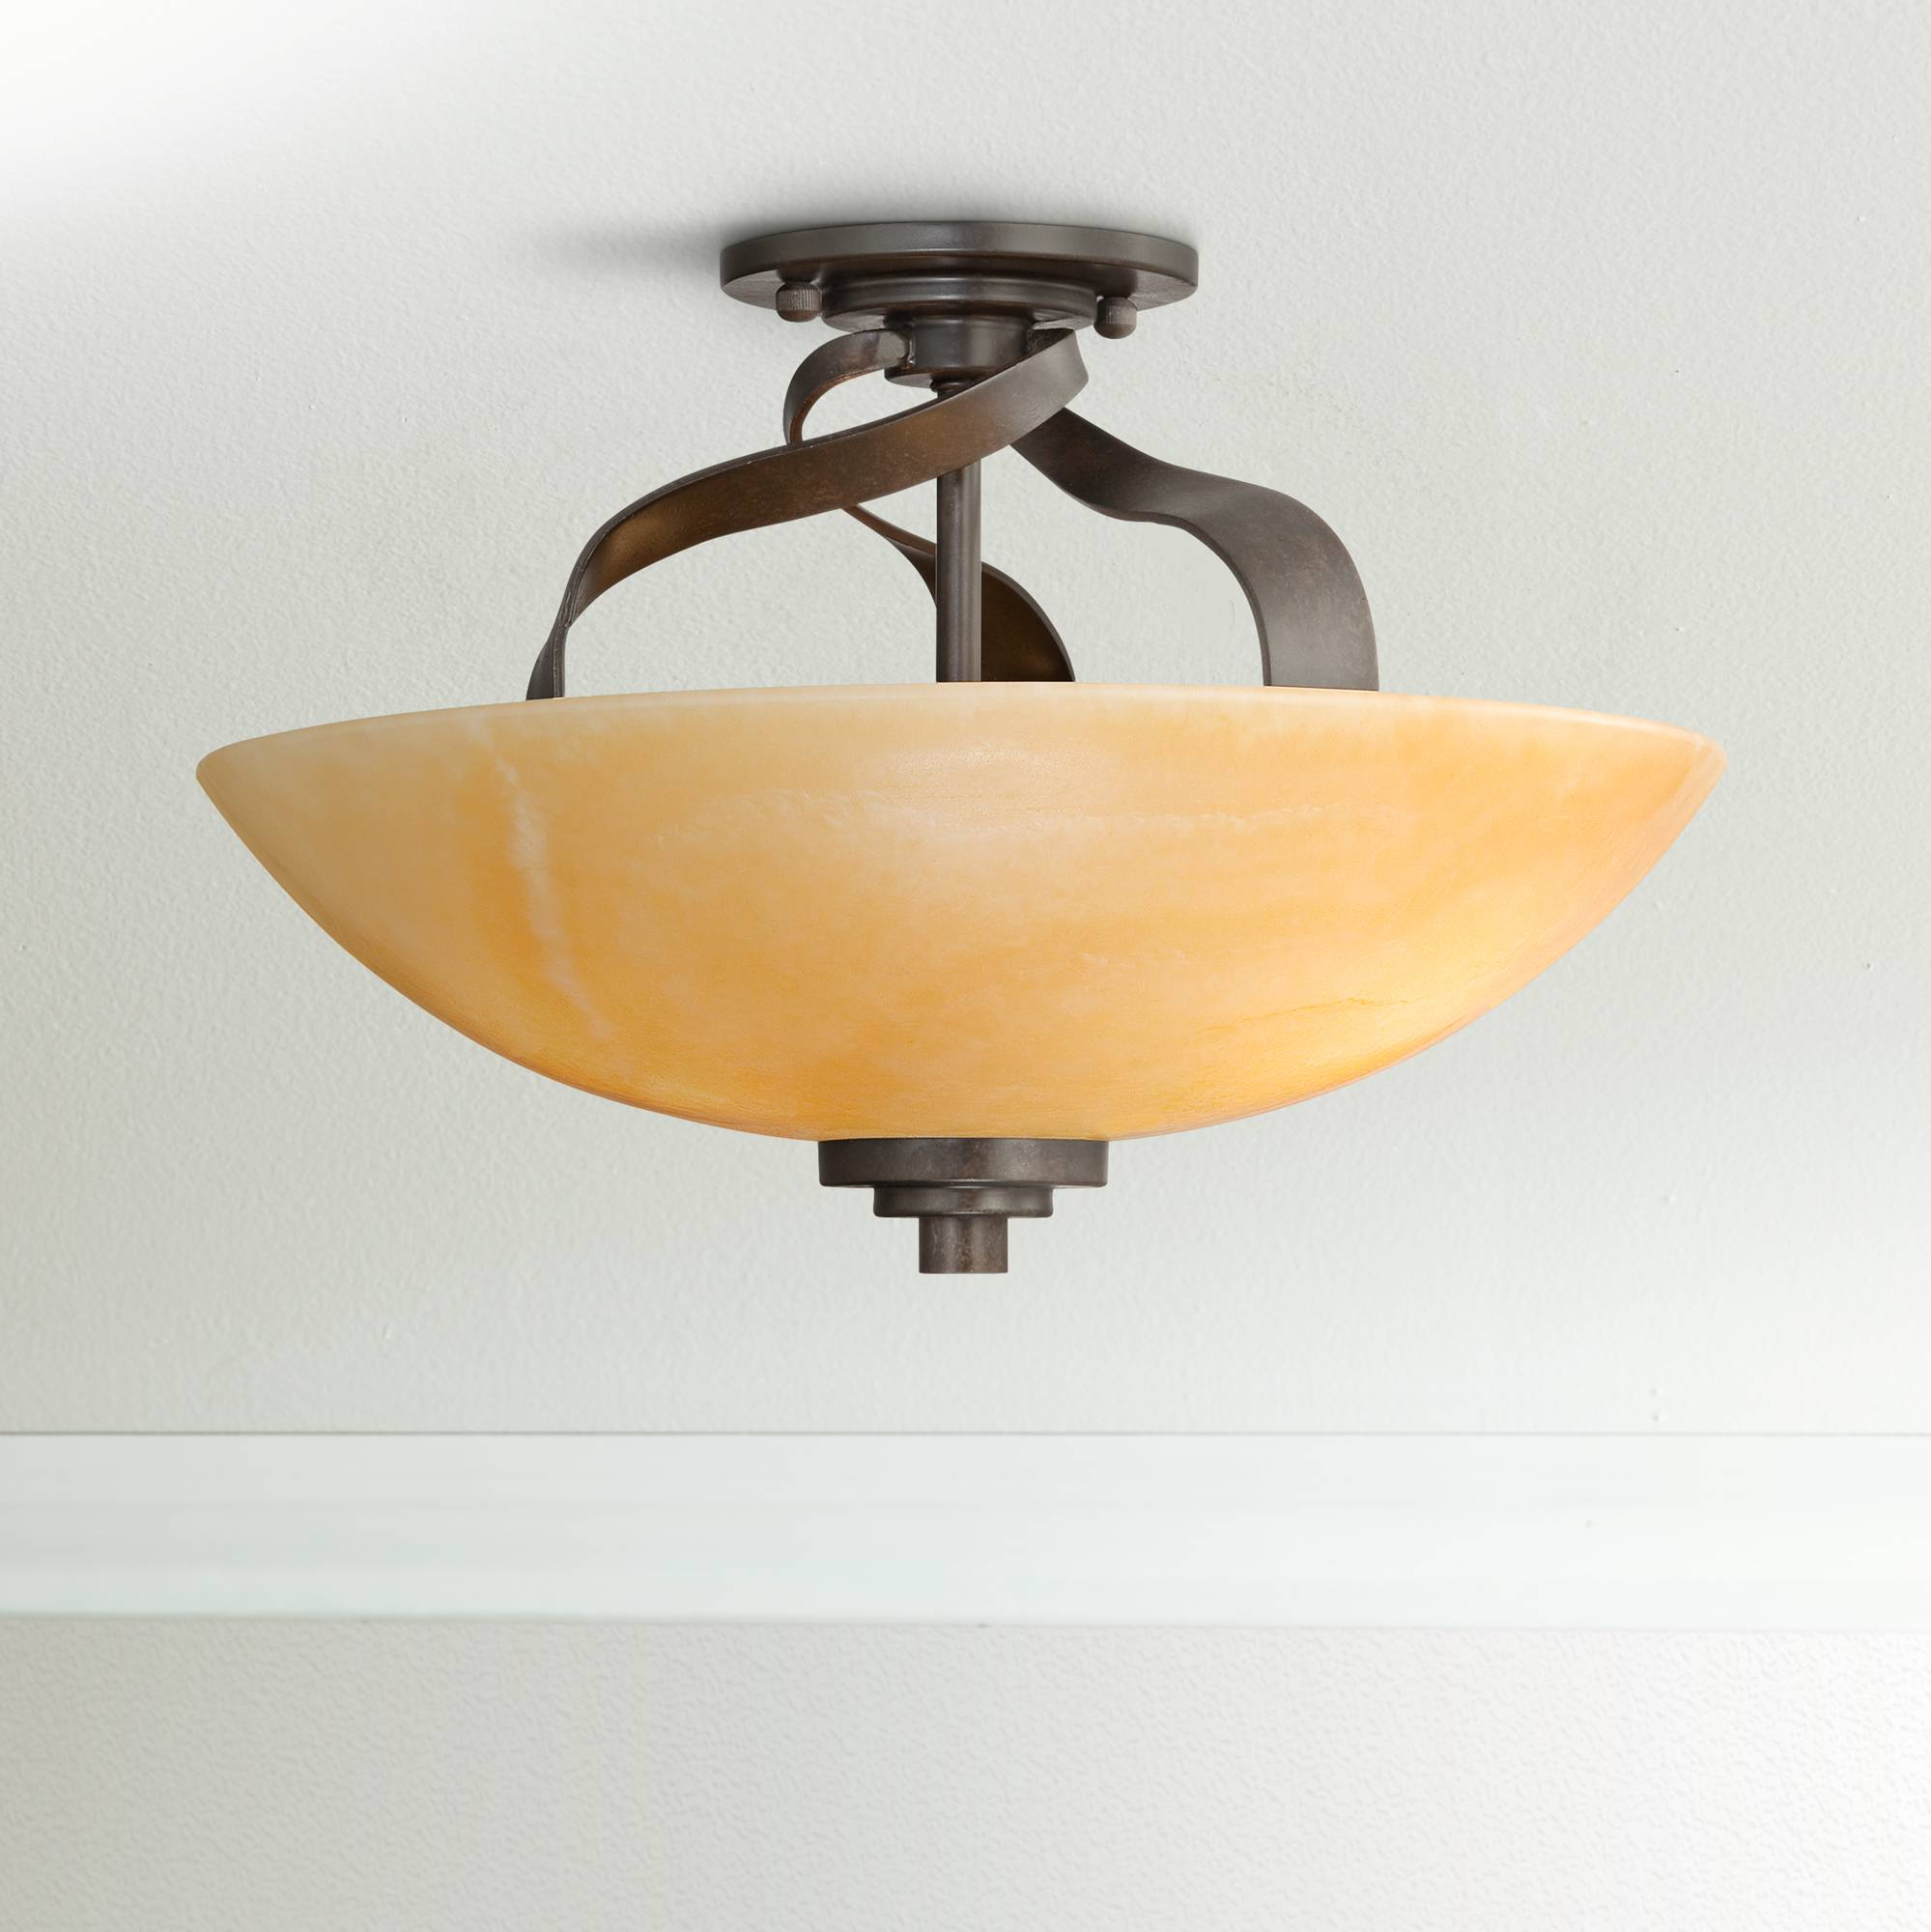 Quoizel kyle collection 16 wide ceiling light fixture